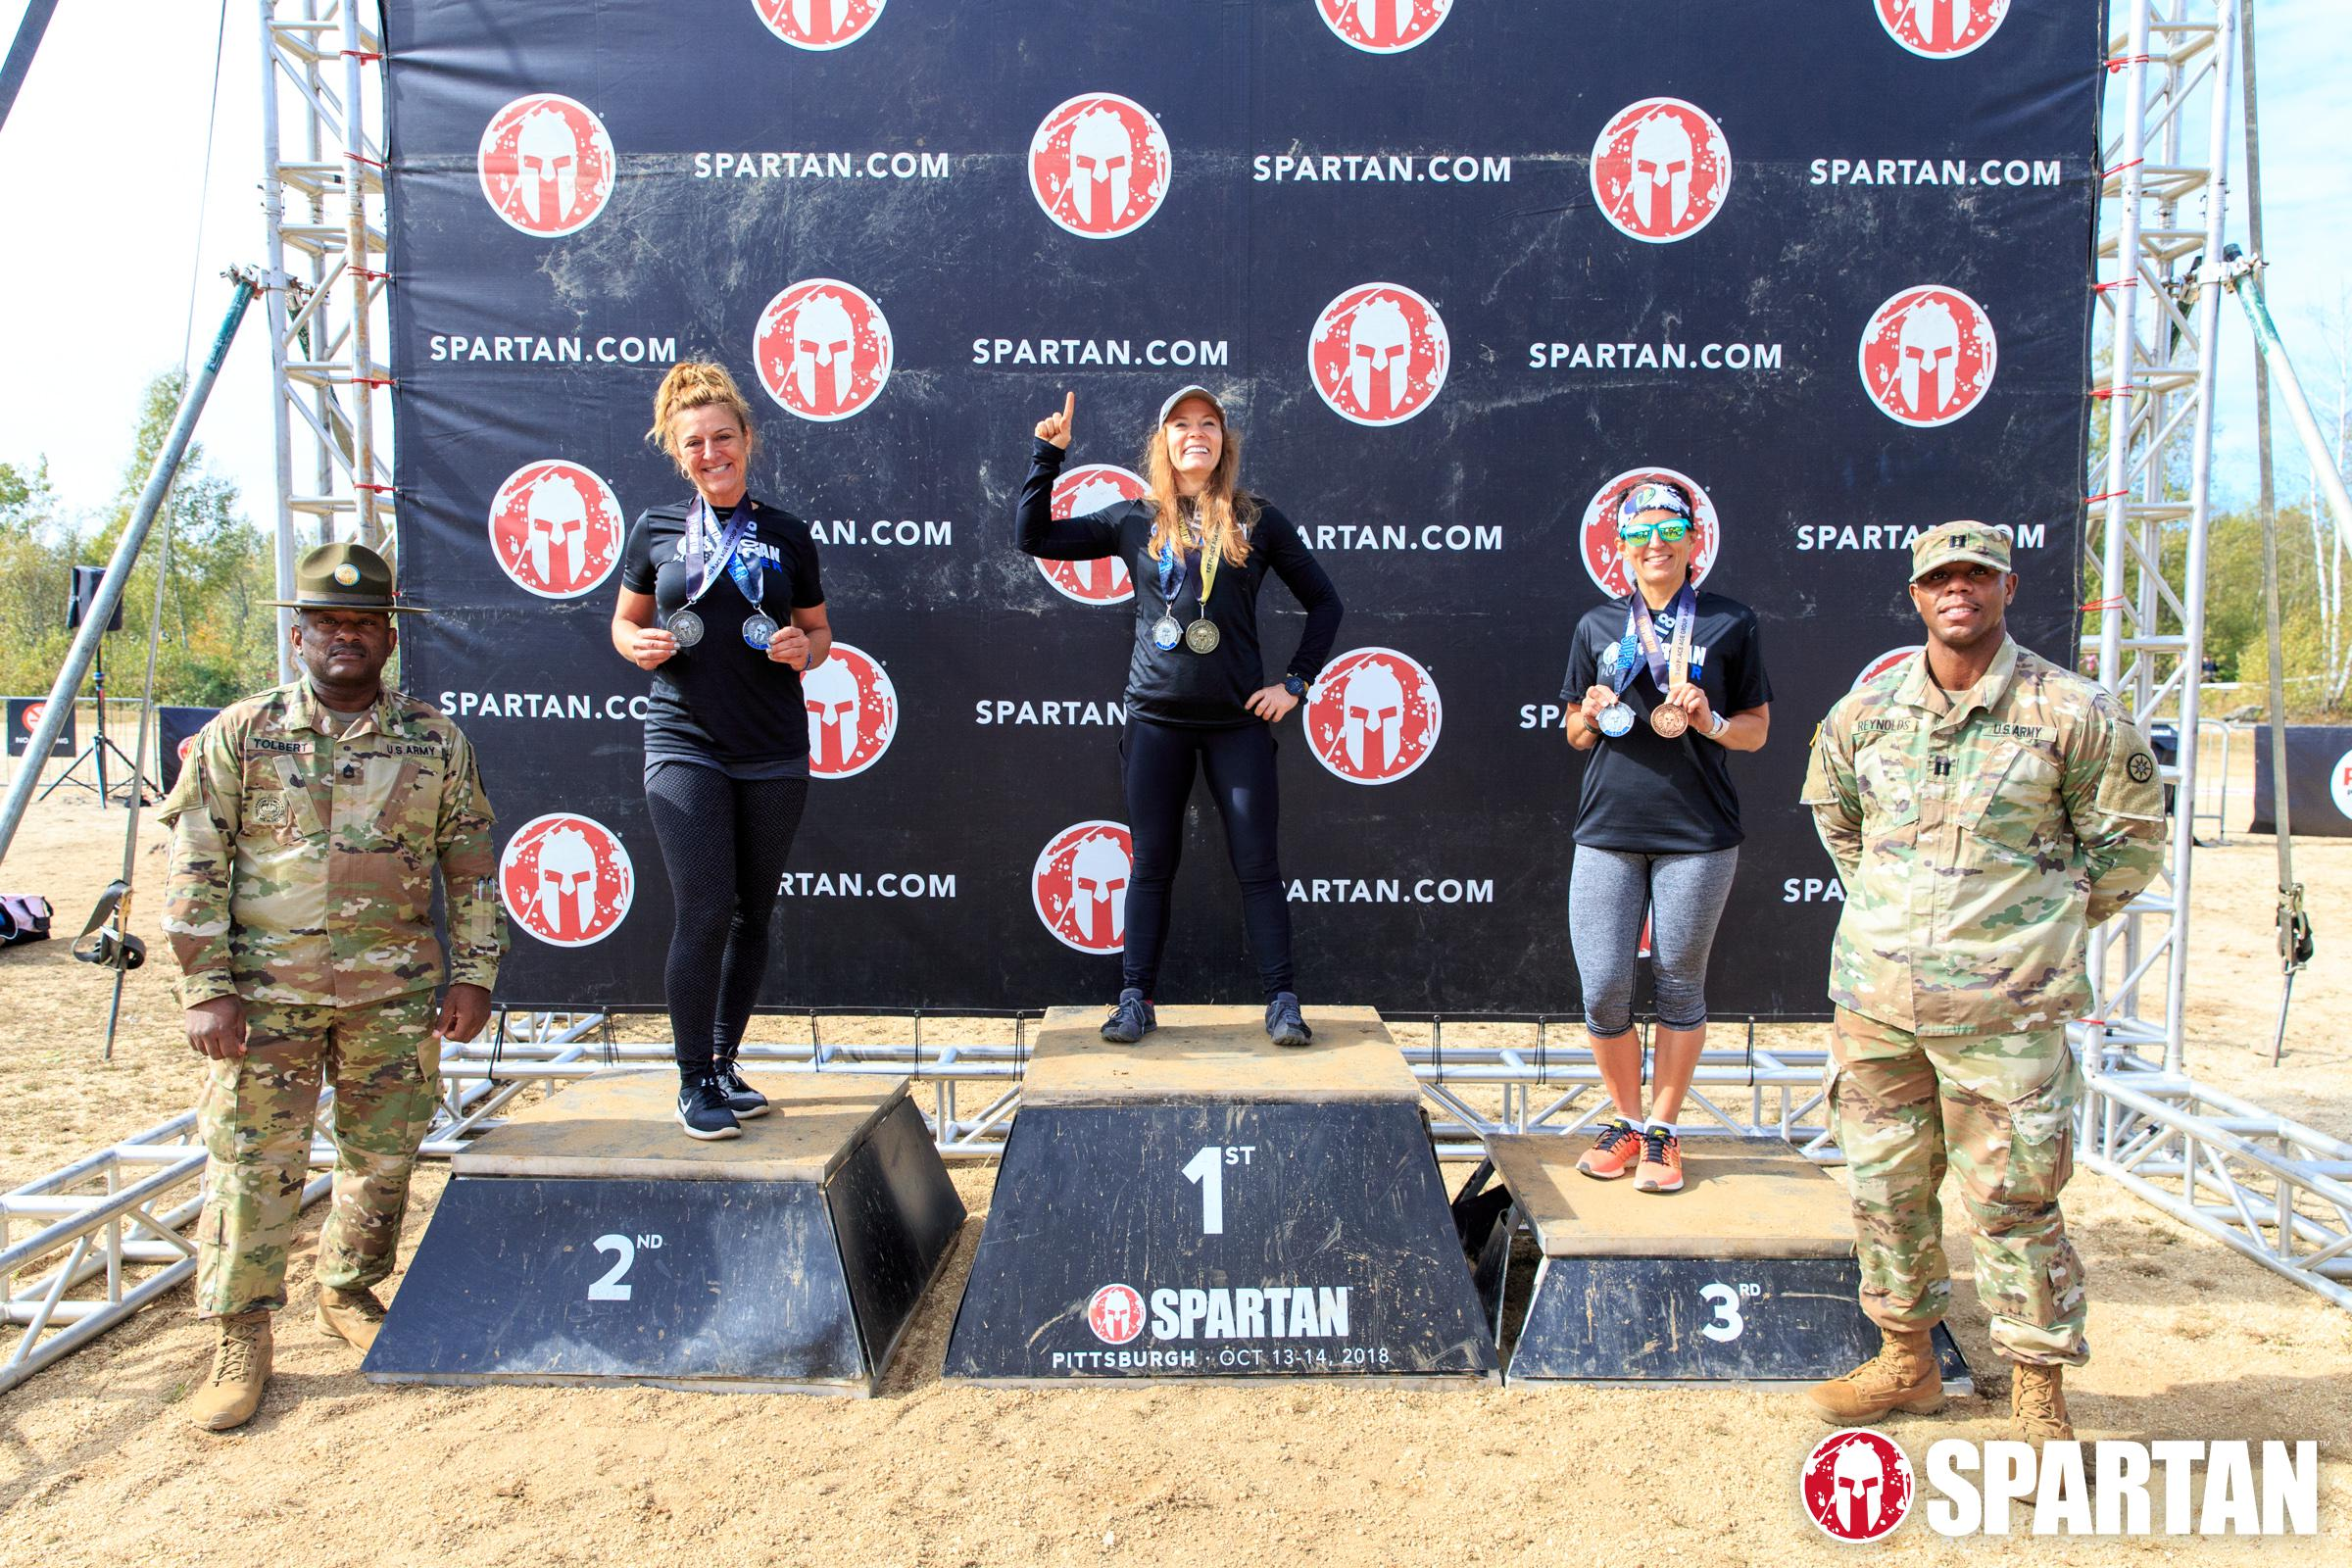 Dawn taking podium at the Pittsburgh Spartan Race